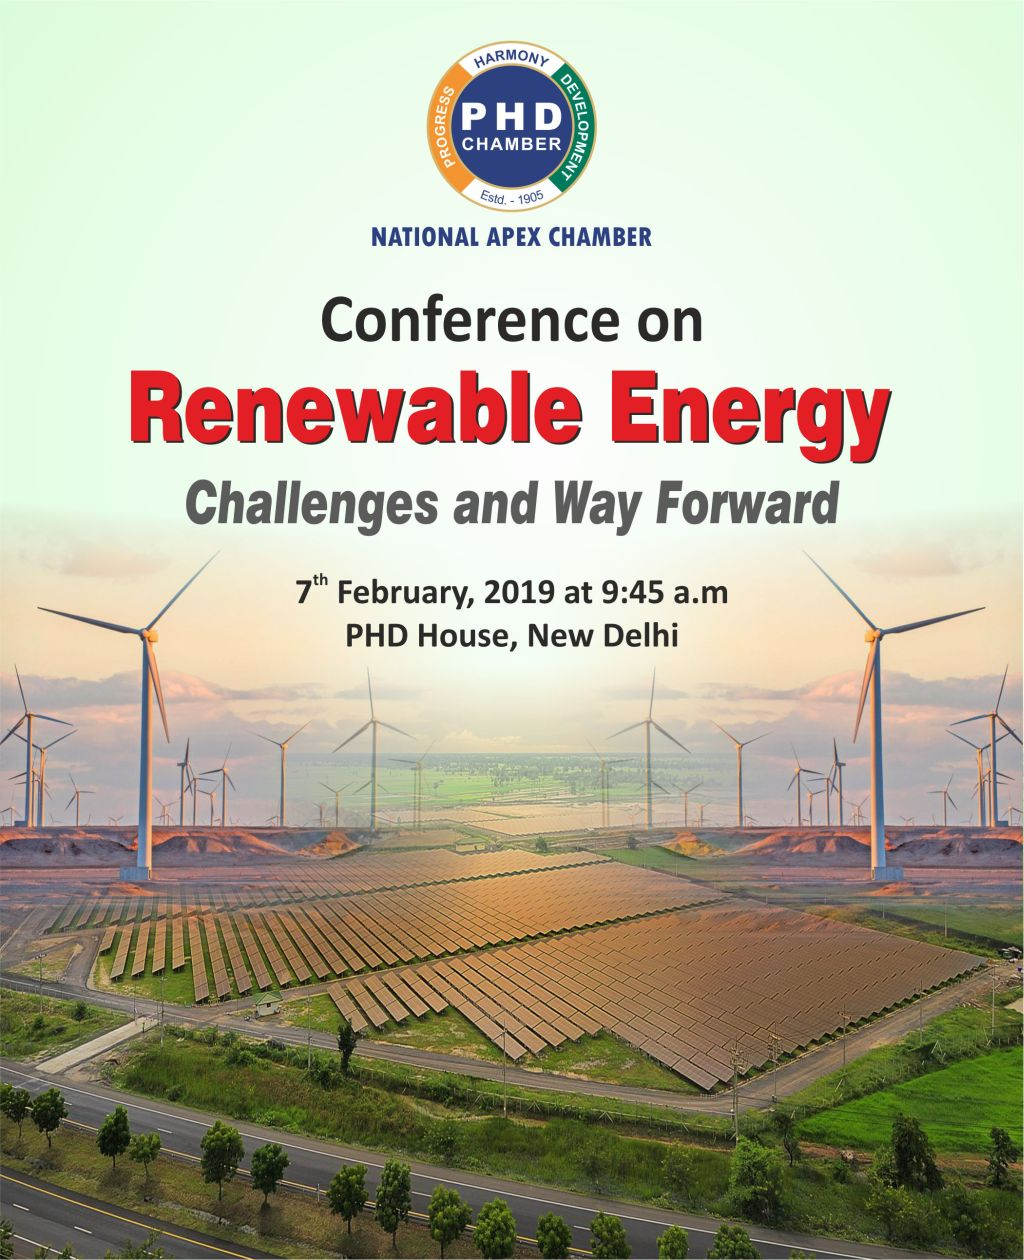 Conference on Renewable Energy -Challenges and Way Forward